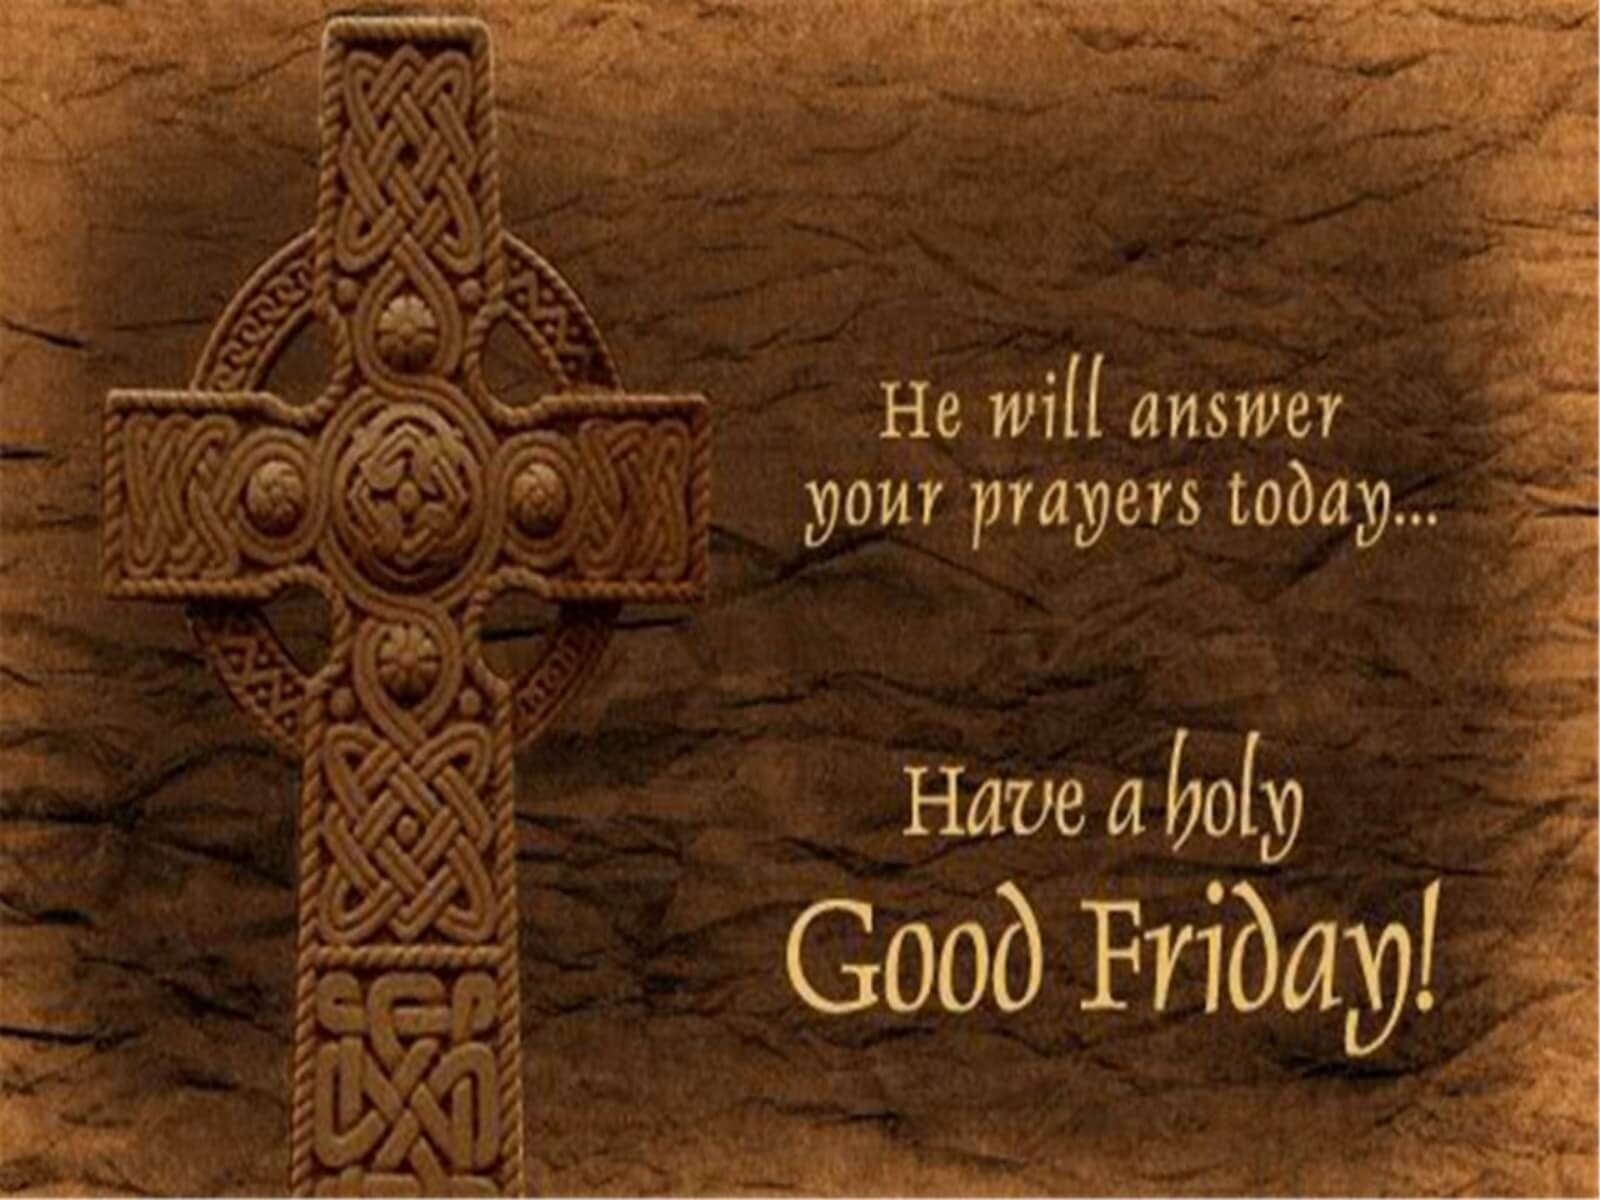 good friday photo wallpaper image